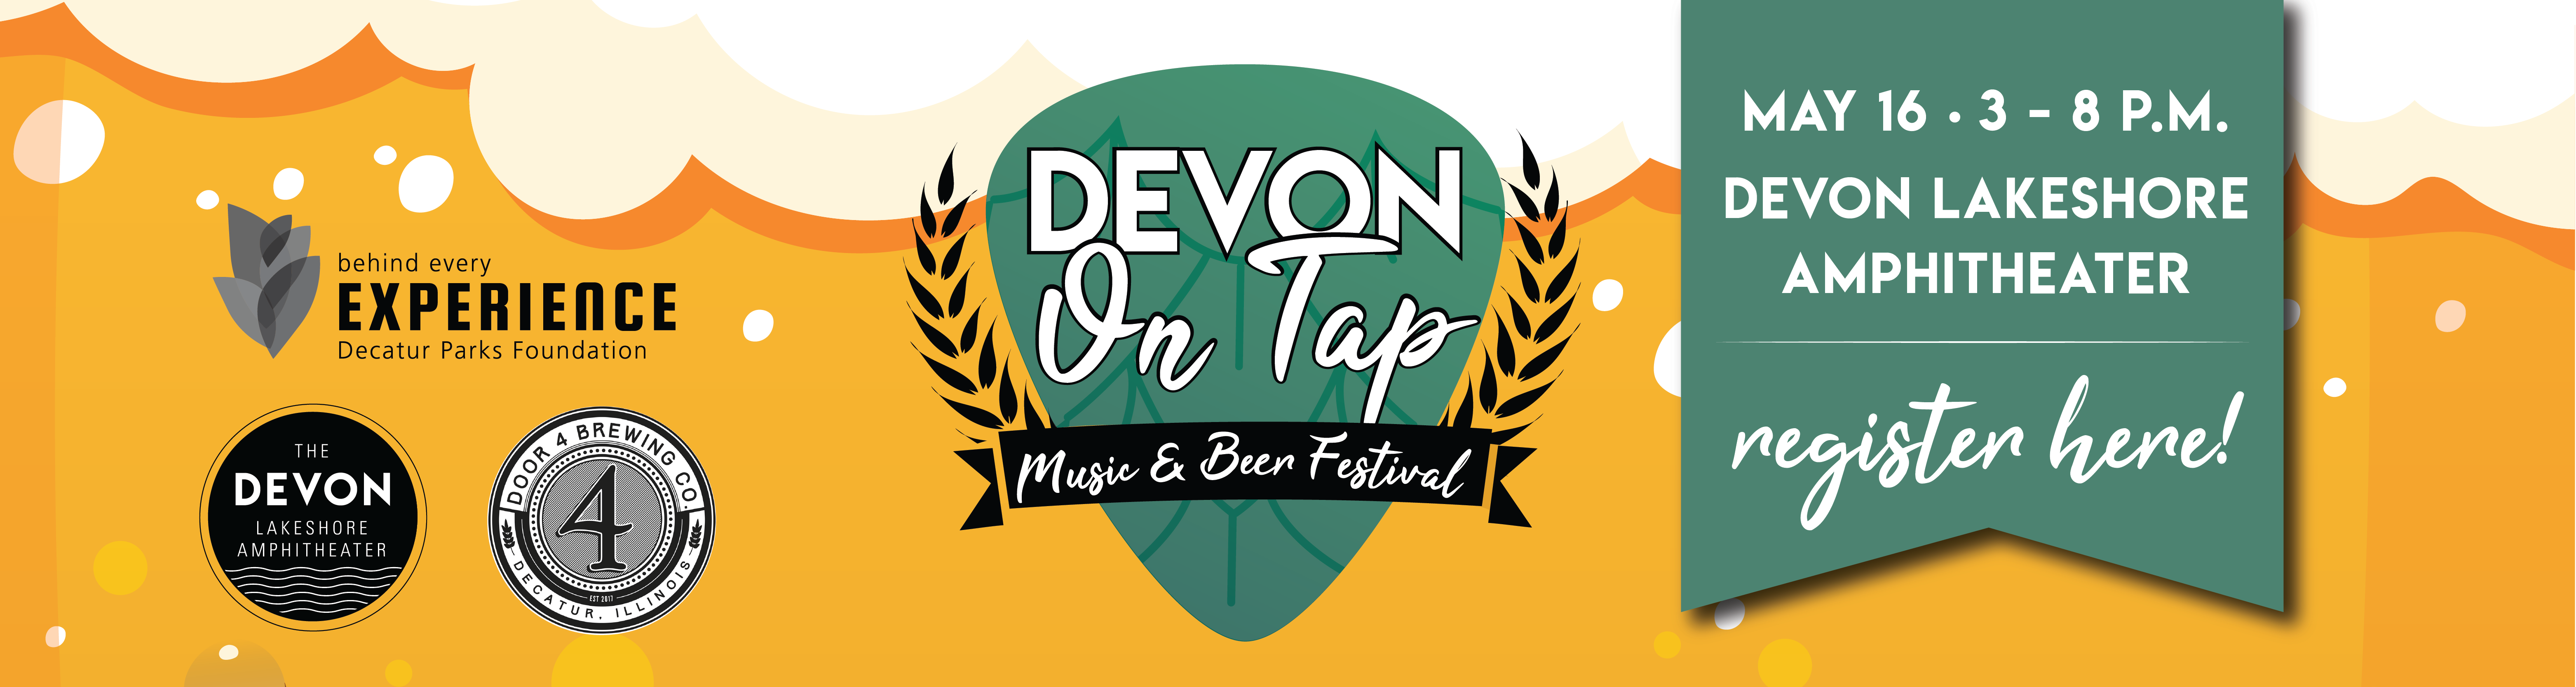 Devon-On-Tap_WebSlider-01